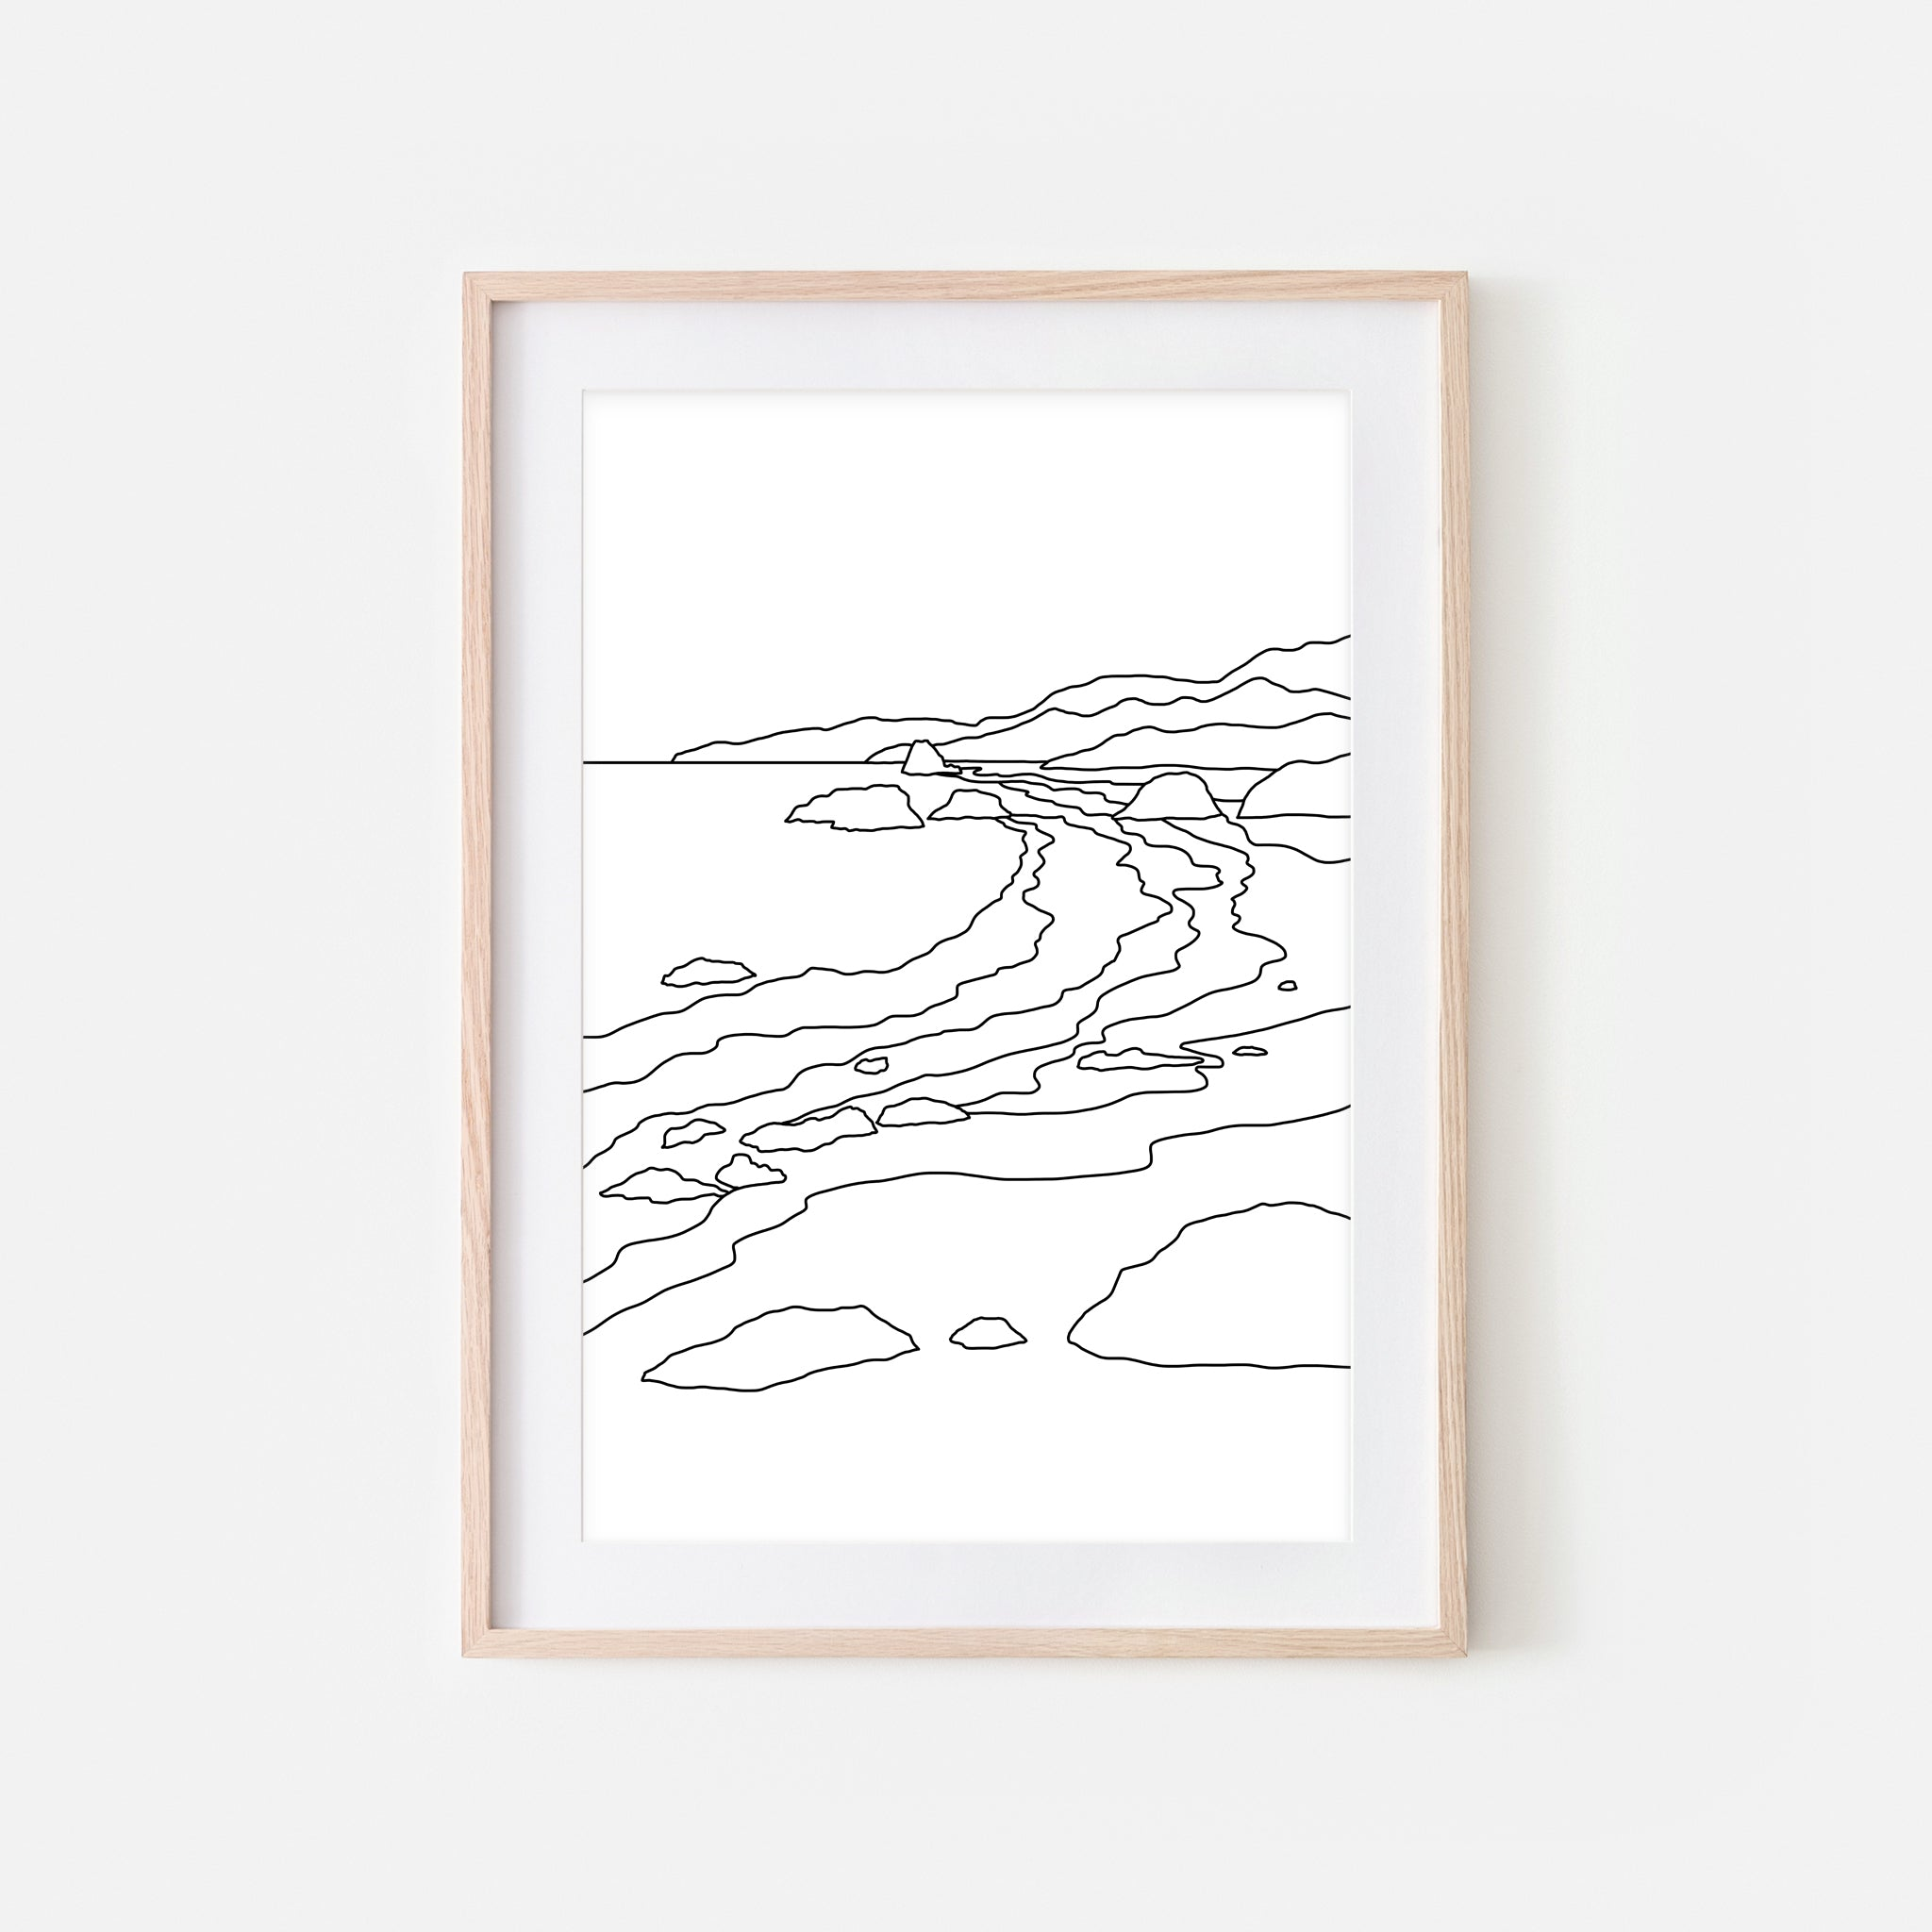 Beach No. 9 Wall Art - Minimalist Abstract Coastal Landscape Line Drawing - Black and White Print, Poster or Printable Download